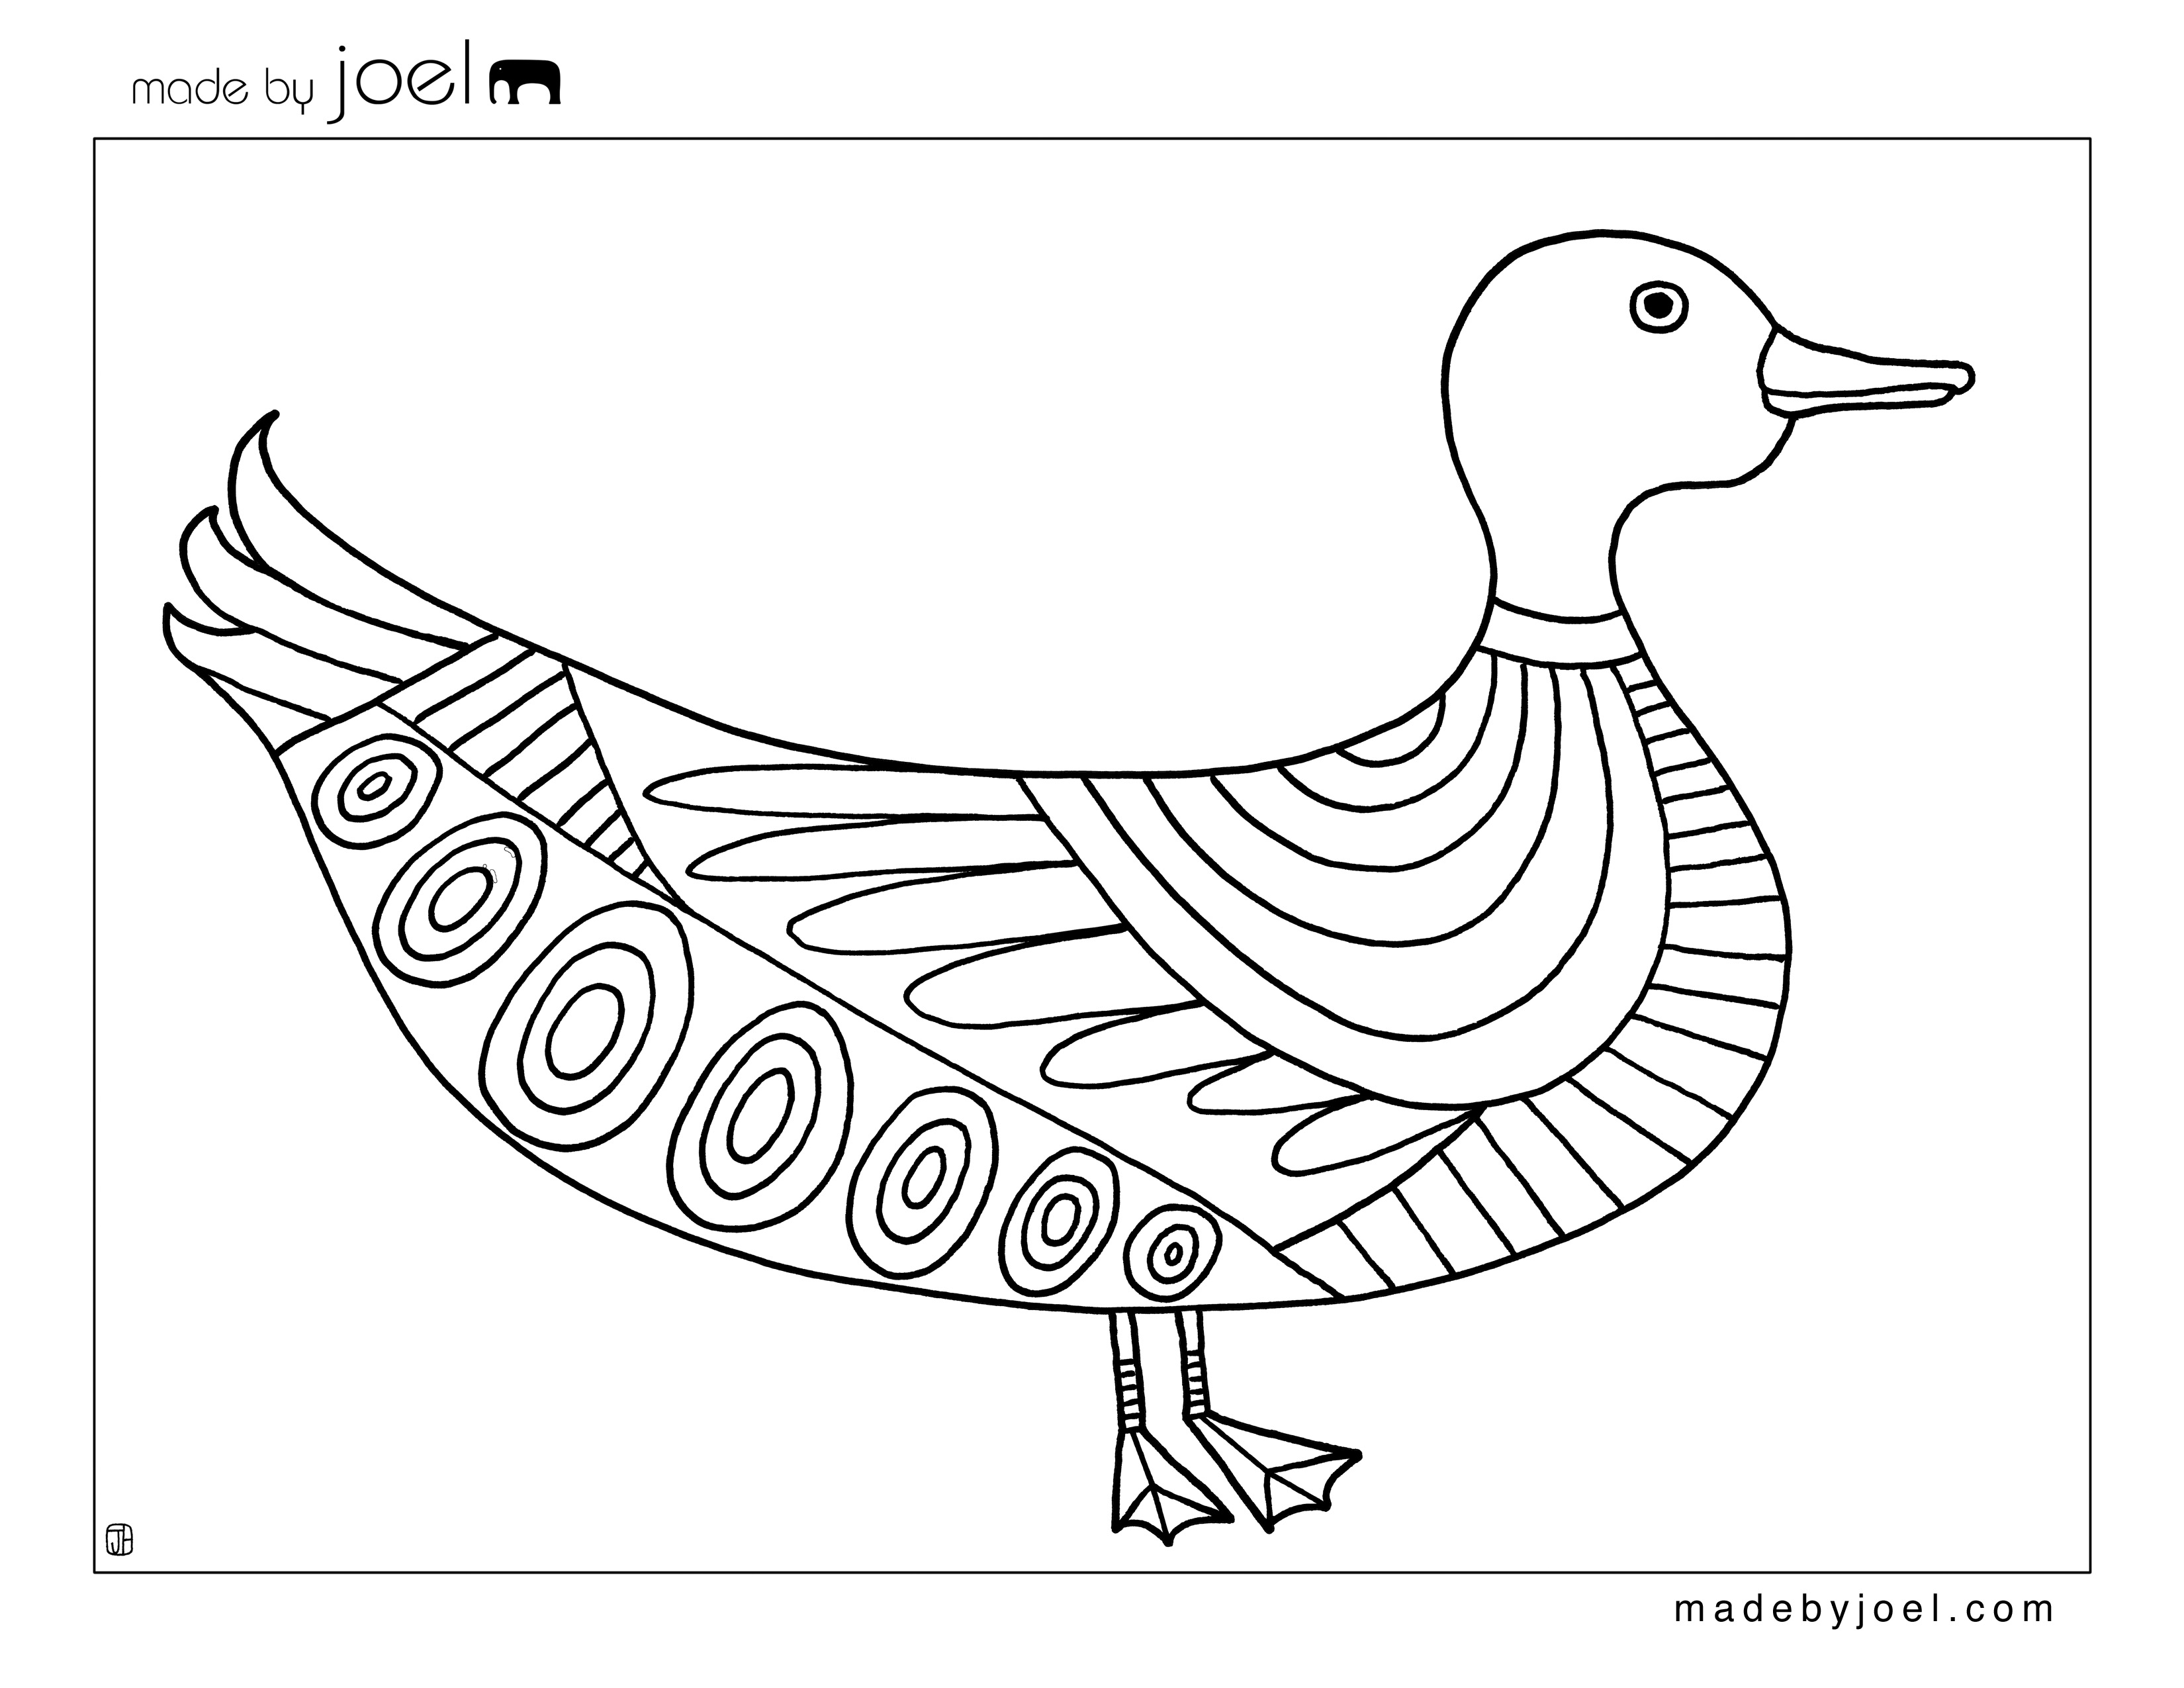 3300x2550 Made By Joel Duck And Goat Coloring Sheets